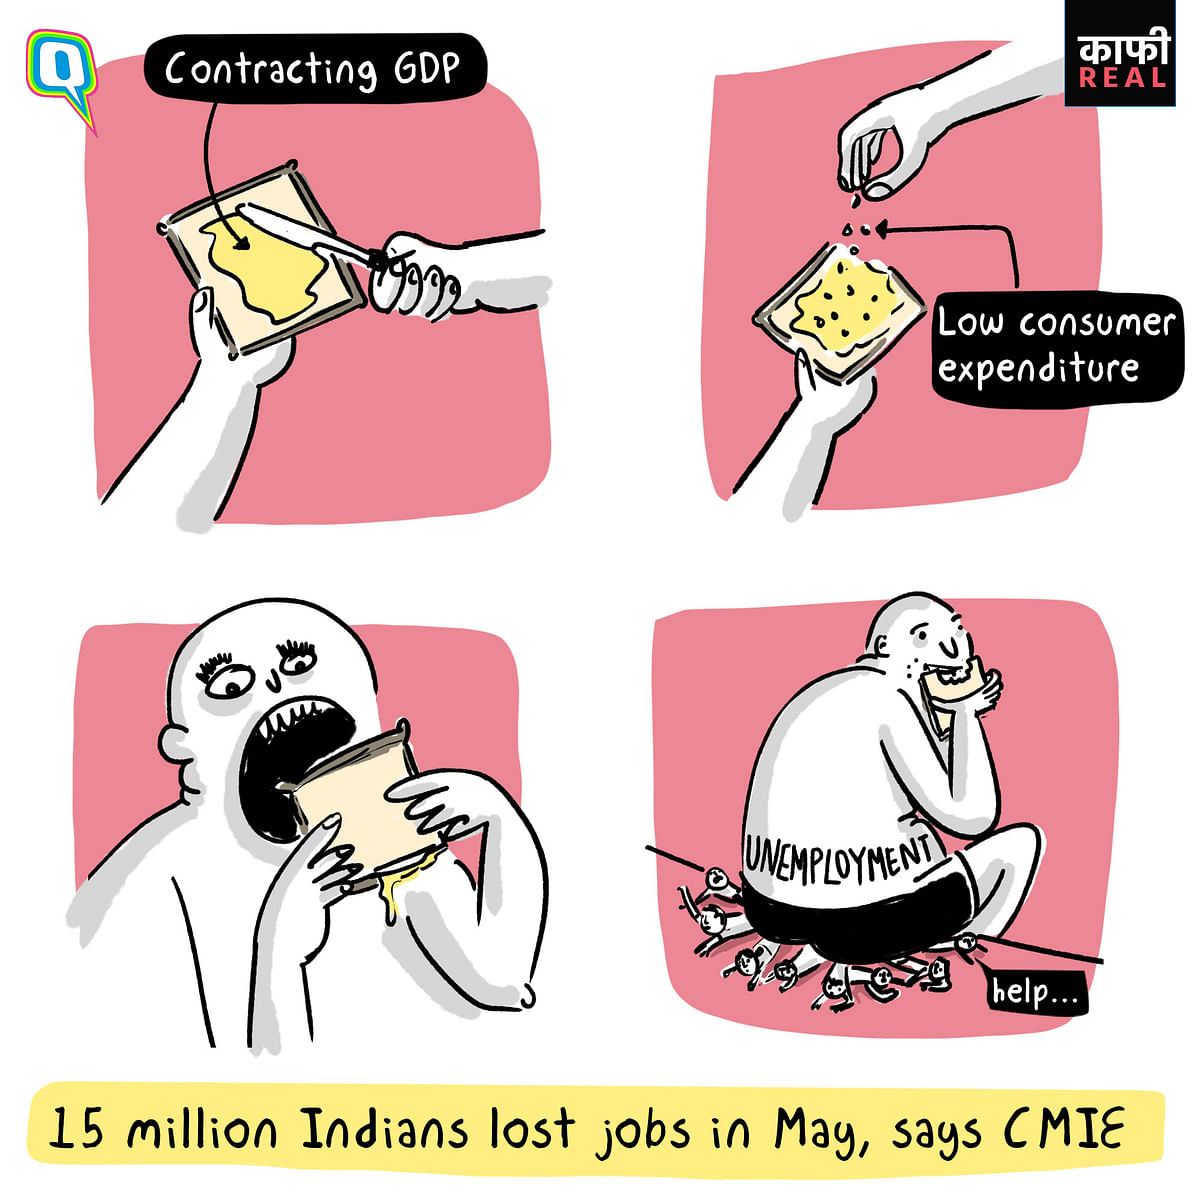 """Mahesh Vyas said that the job losses were """"largely because the economy simply could not provide employment to large numbers who sought work."""""""